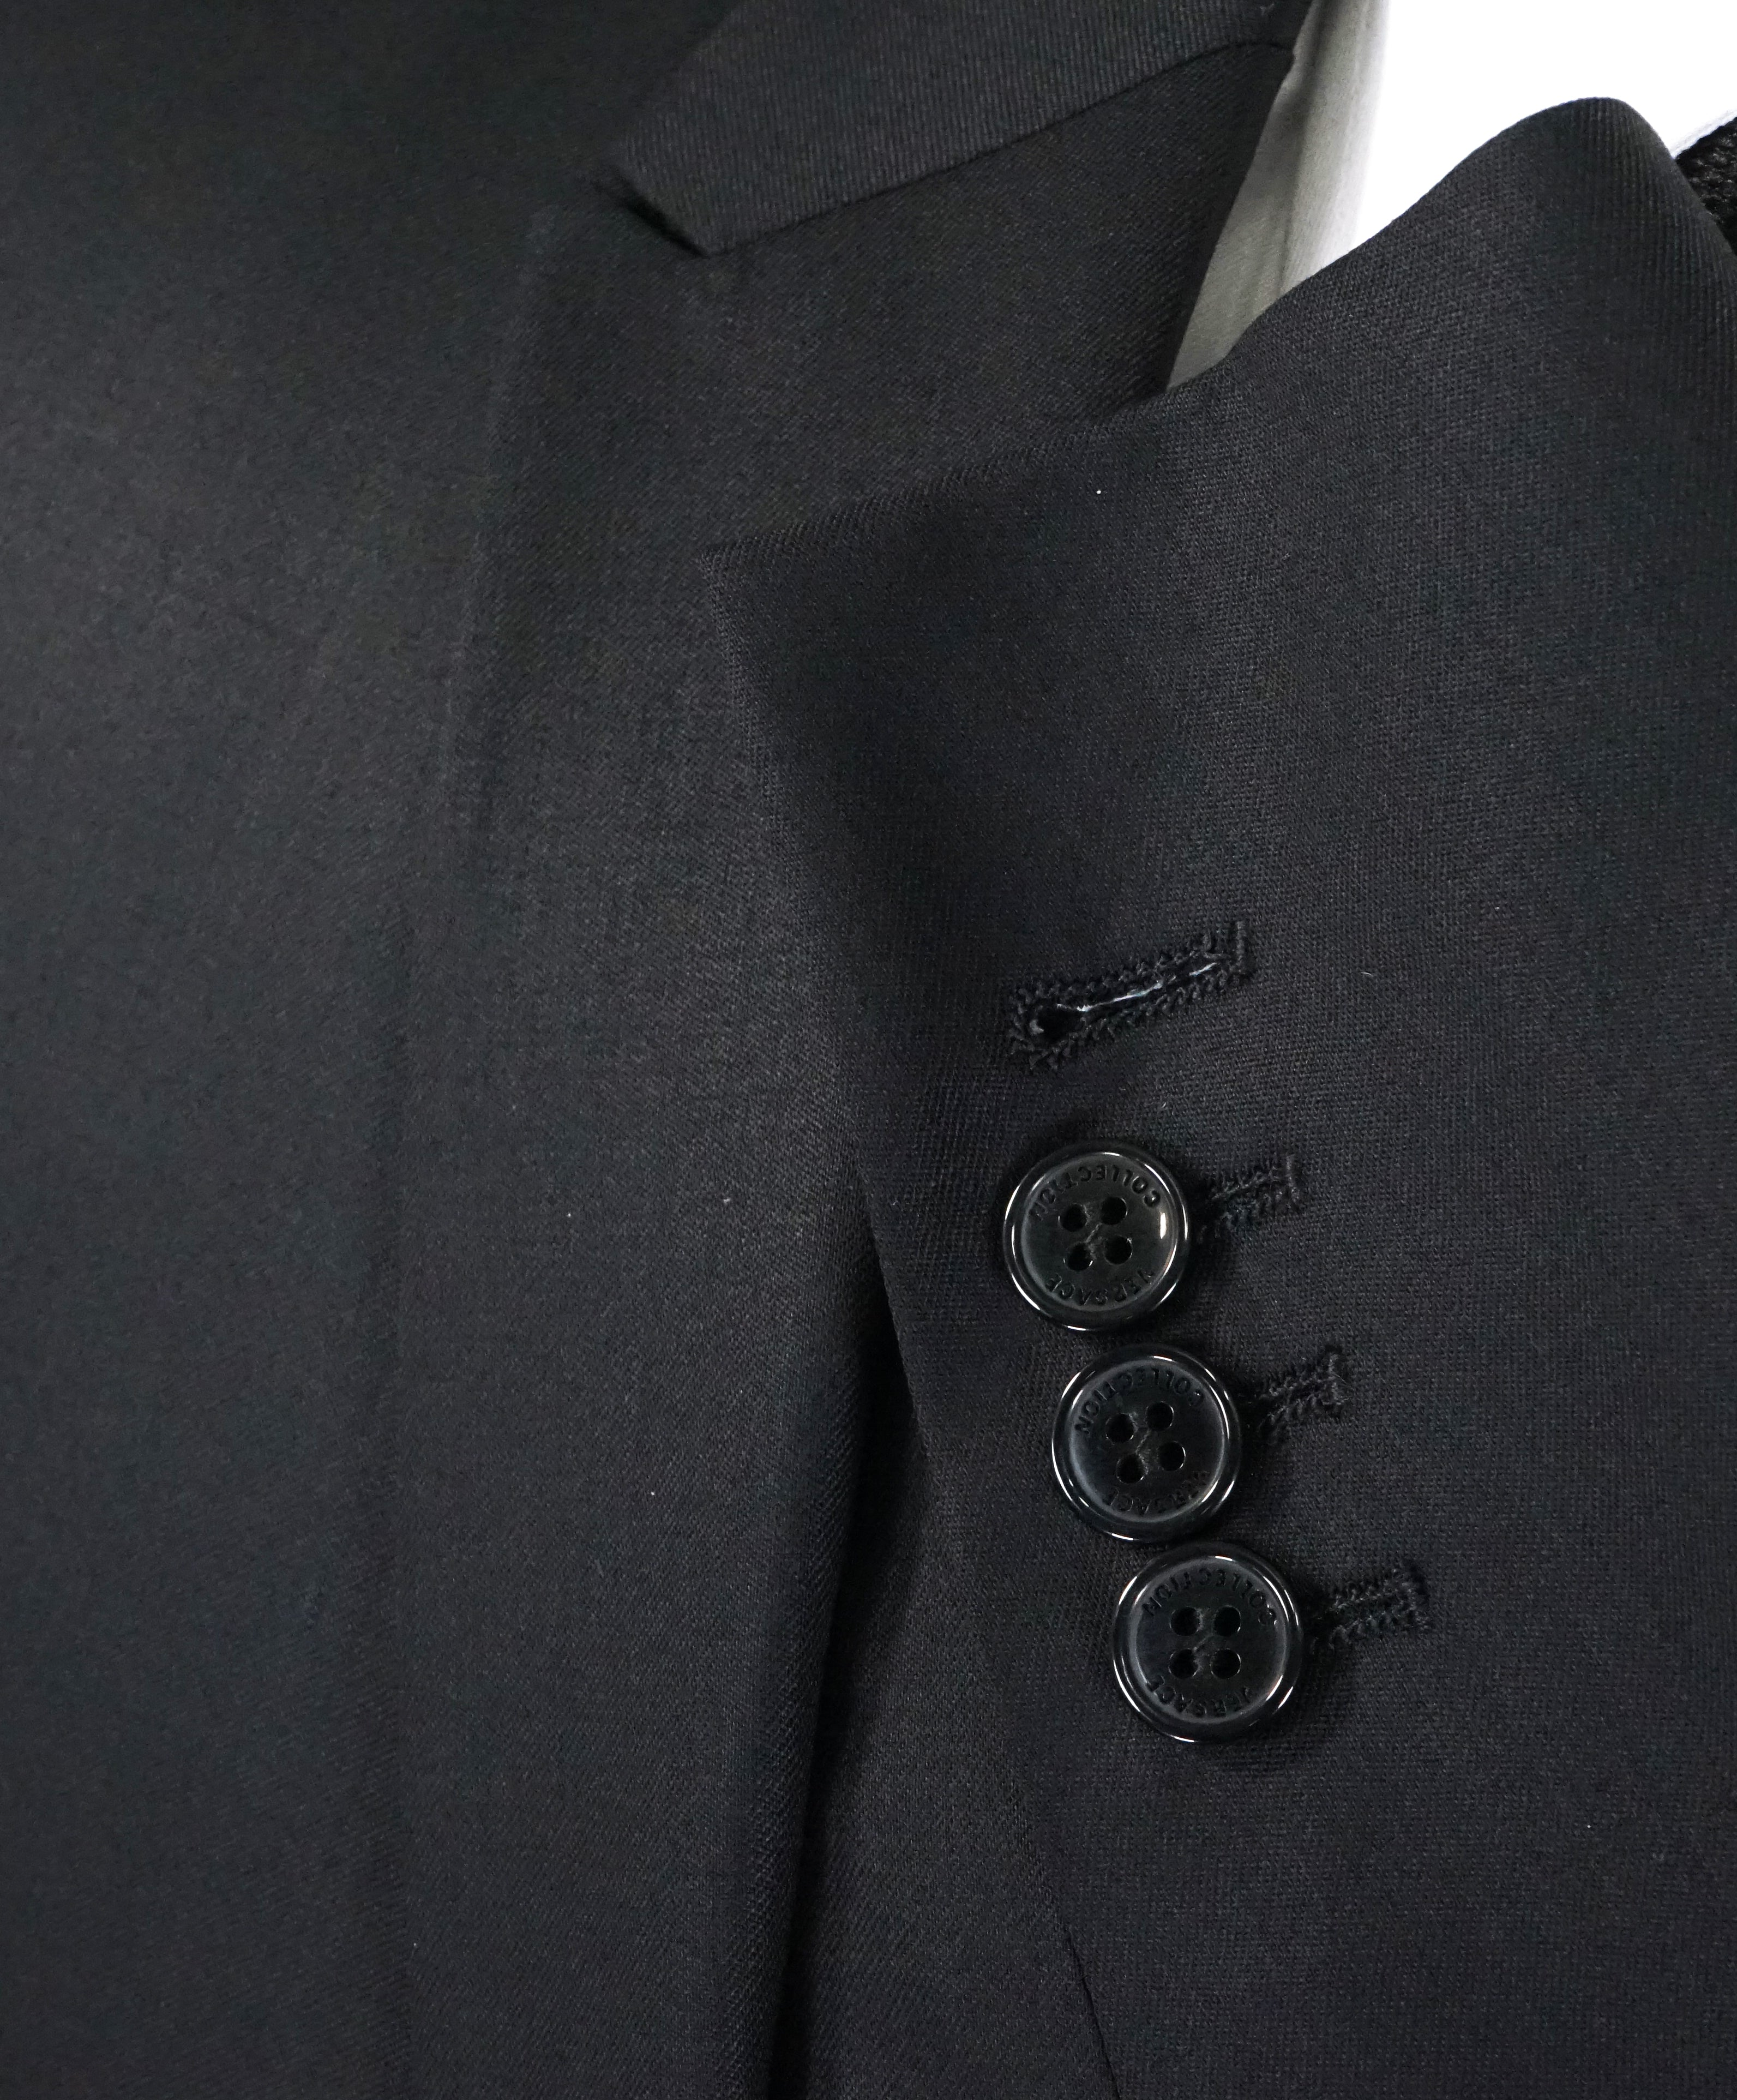 VERSACE COLLECTION - Peak Lapel Black Suit W Baroque Lining - 40R